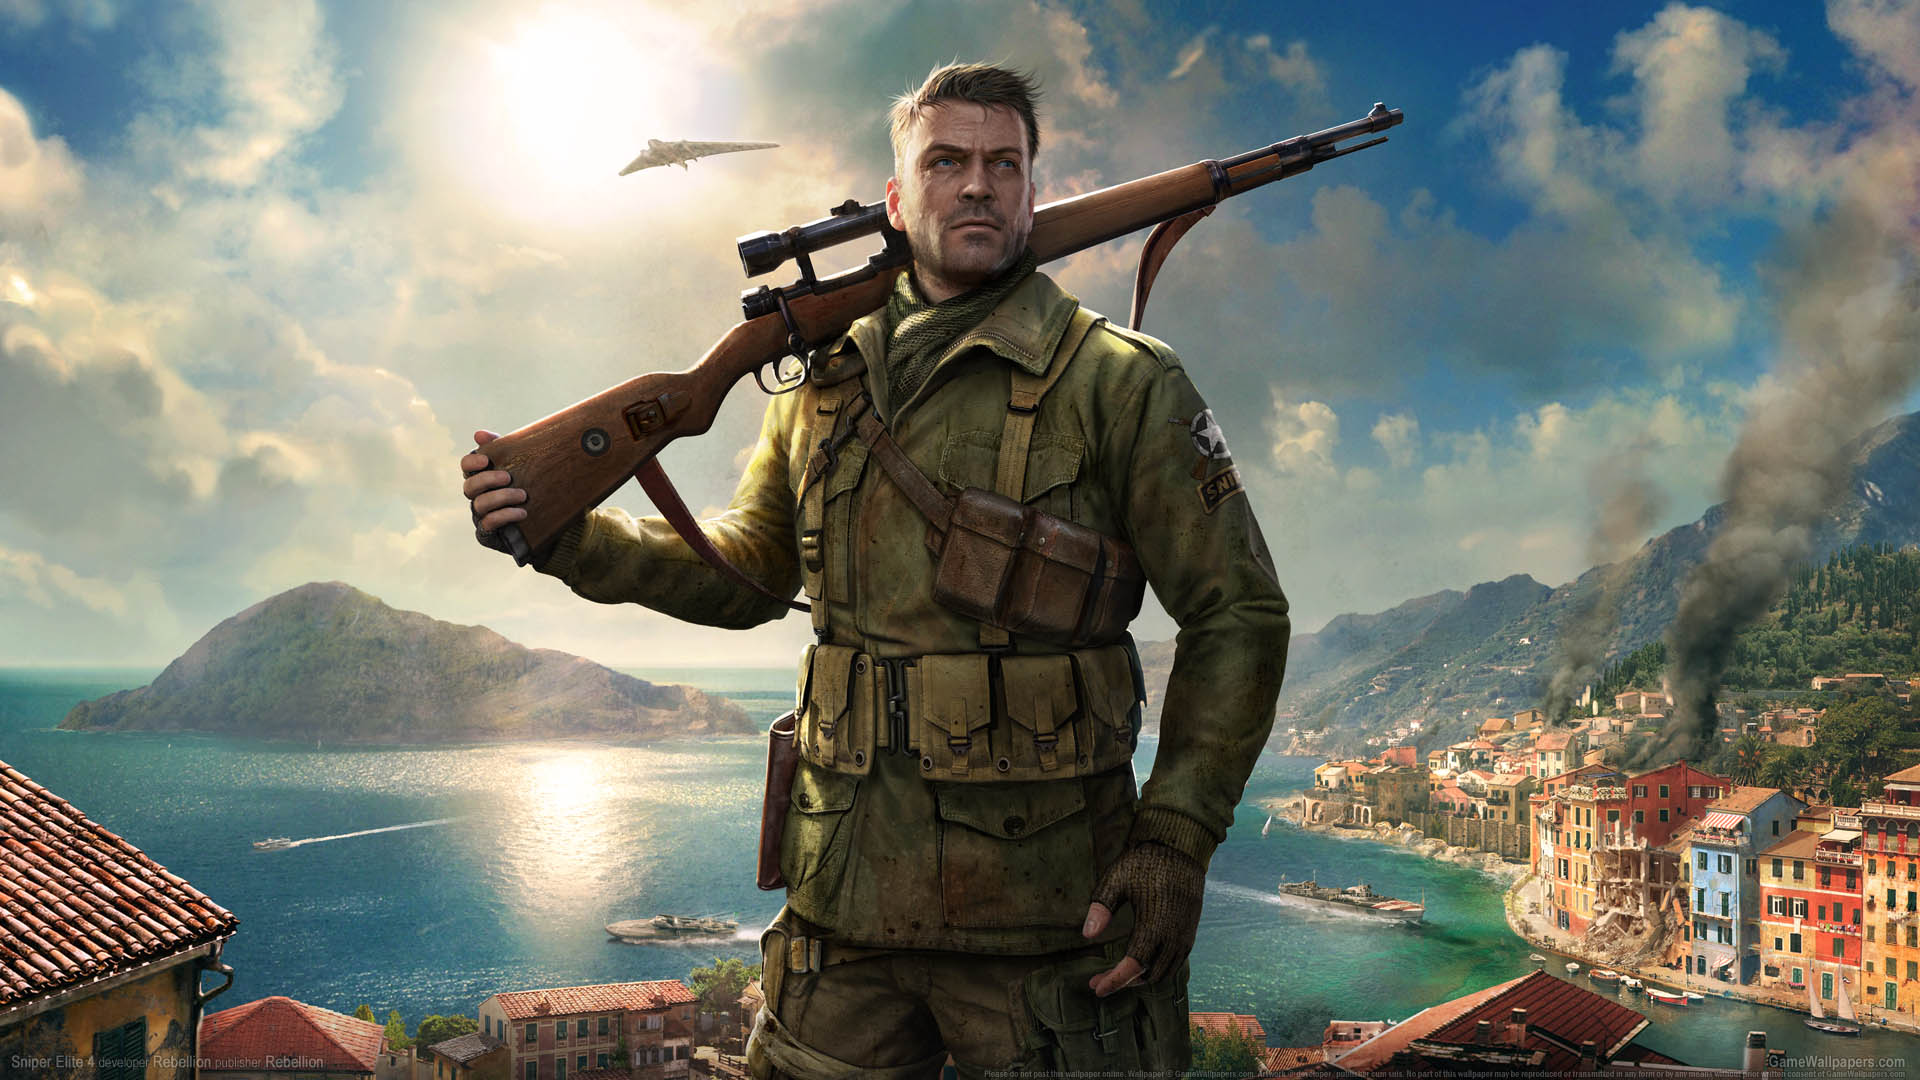 Sniper Elite 4 wallpaper 01 1920x1080 1920x1080